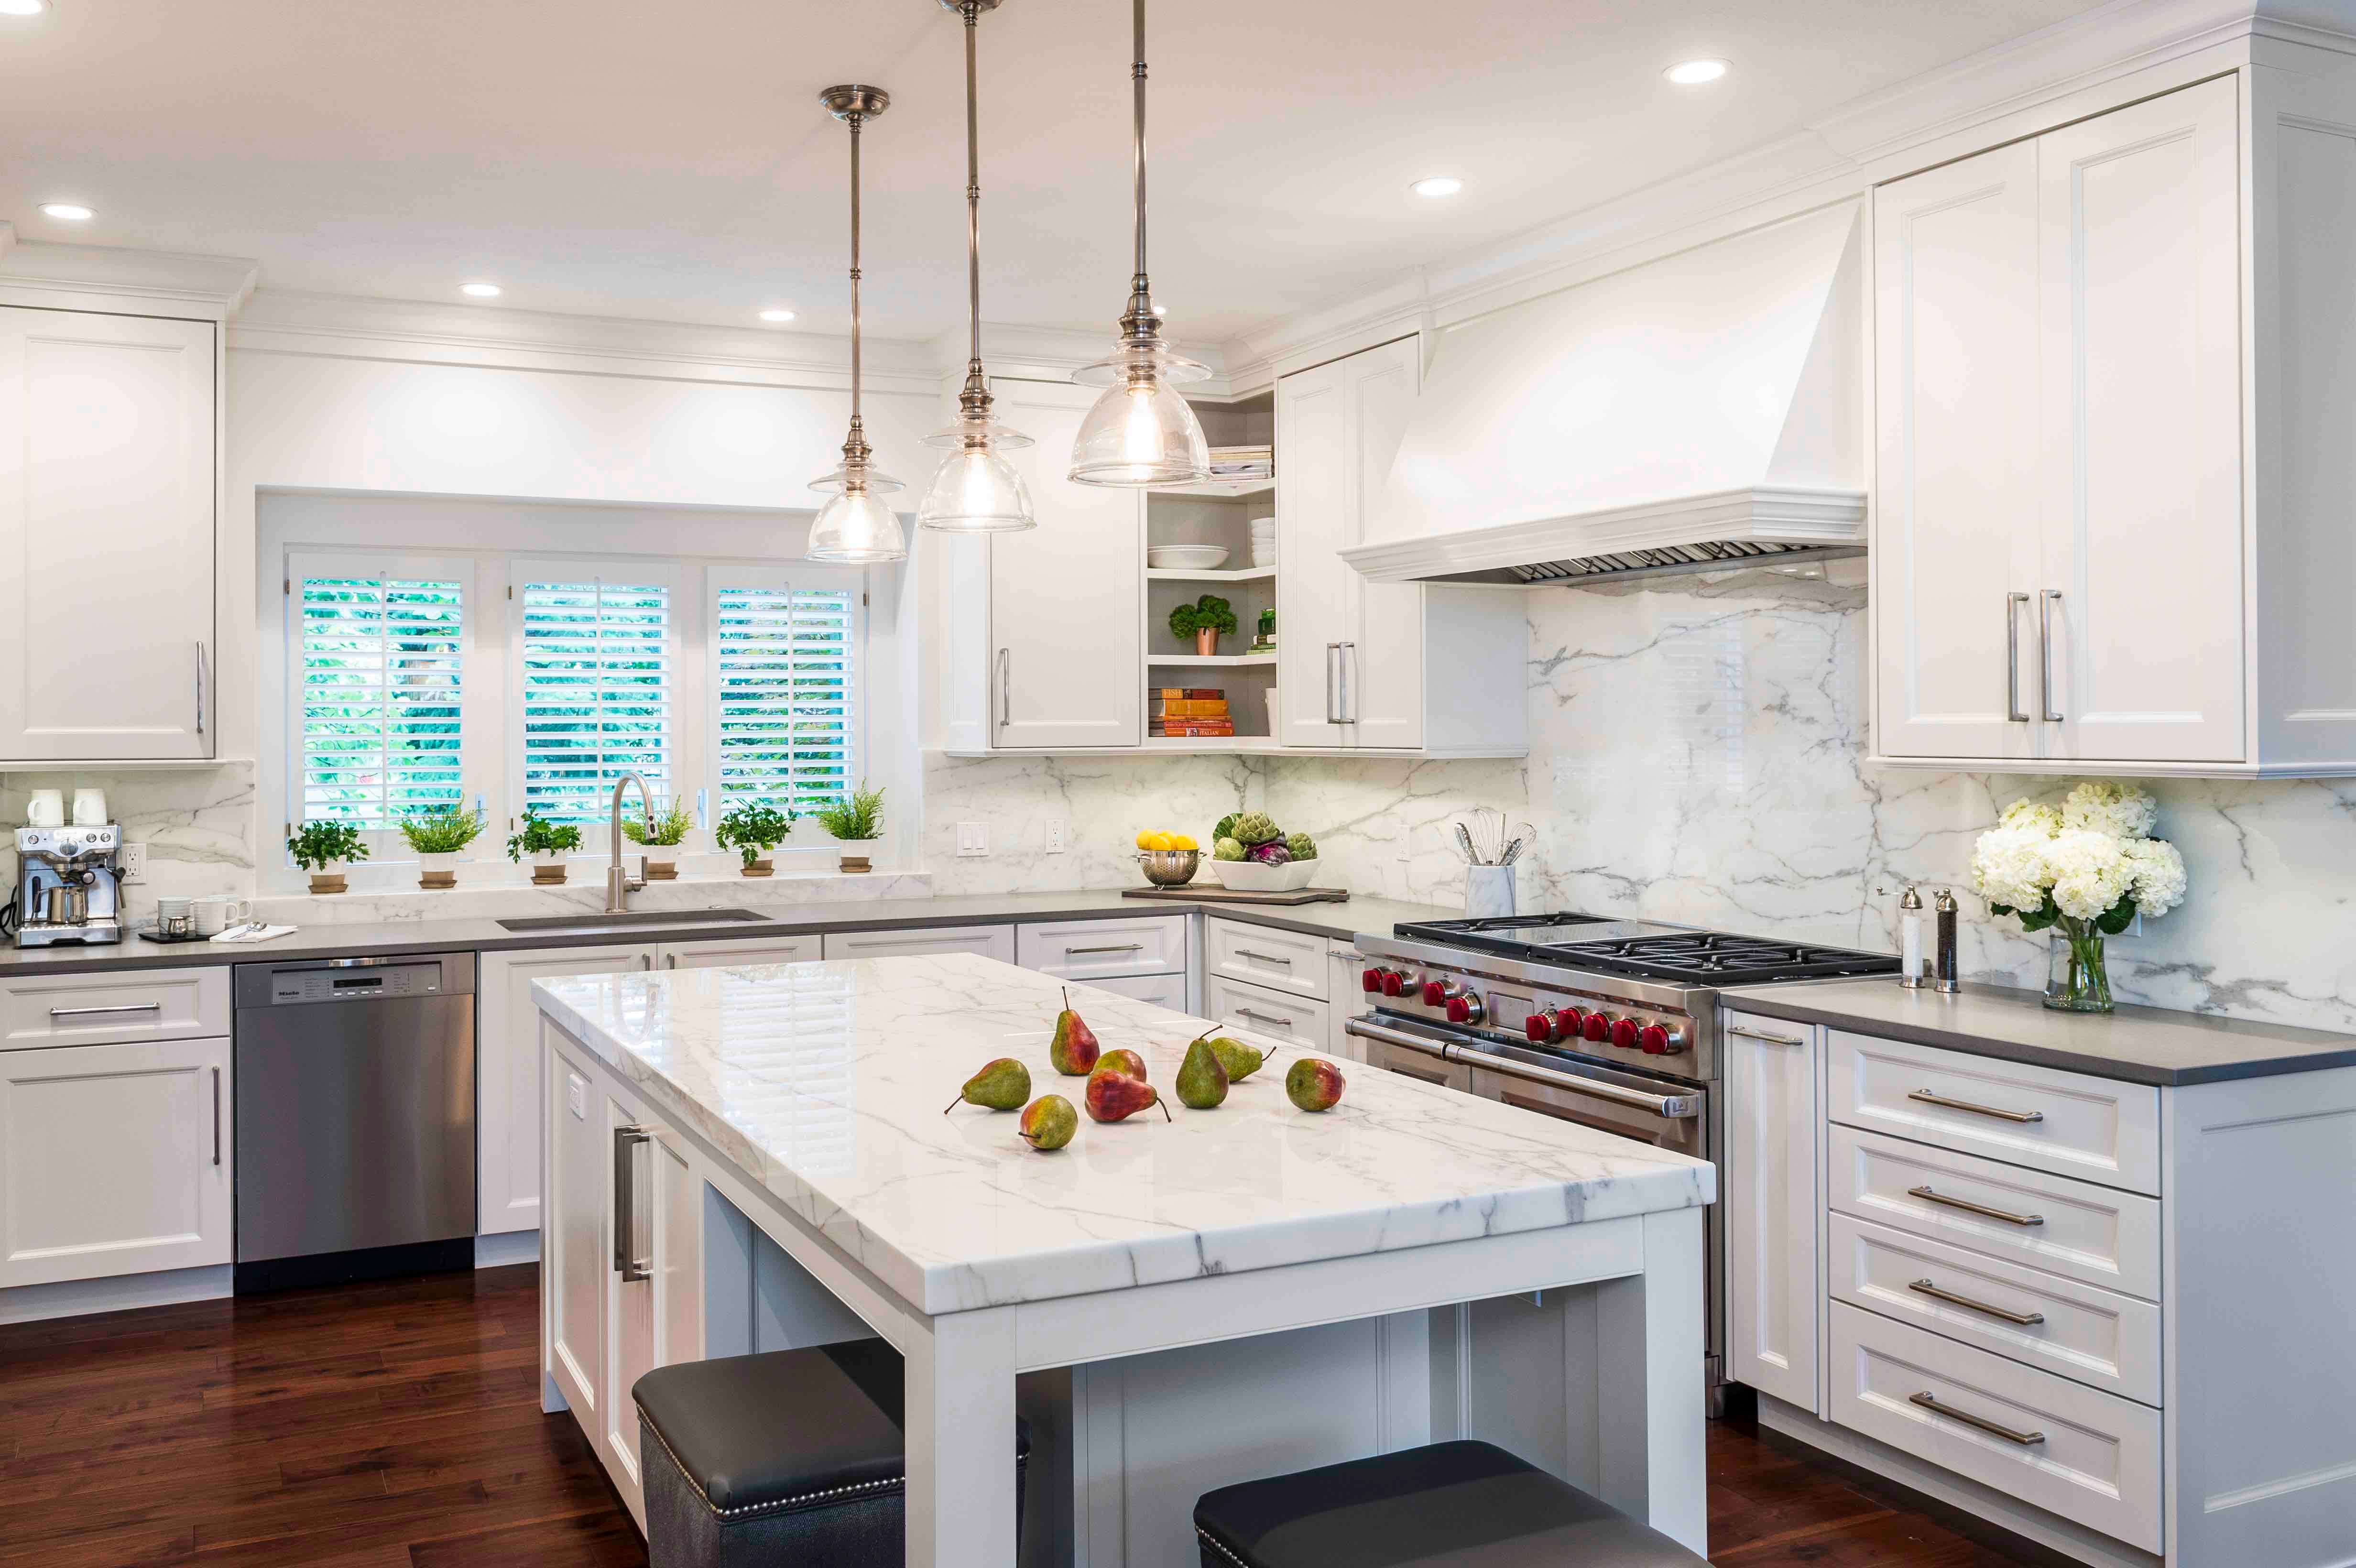 KITCHEN DESIGN TODAY: Designer Tips for Your Next Project